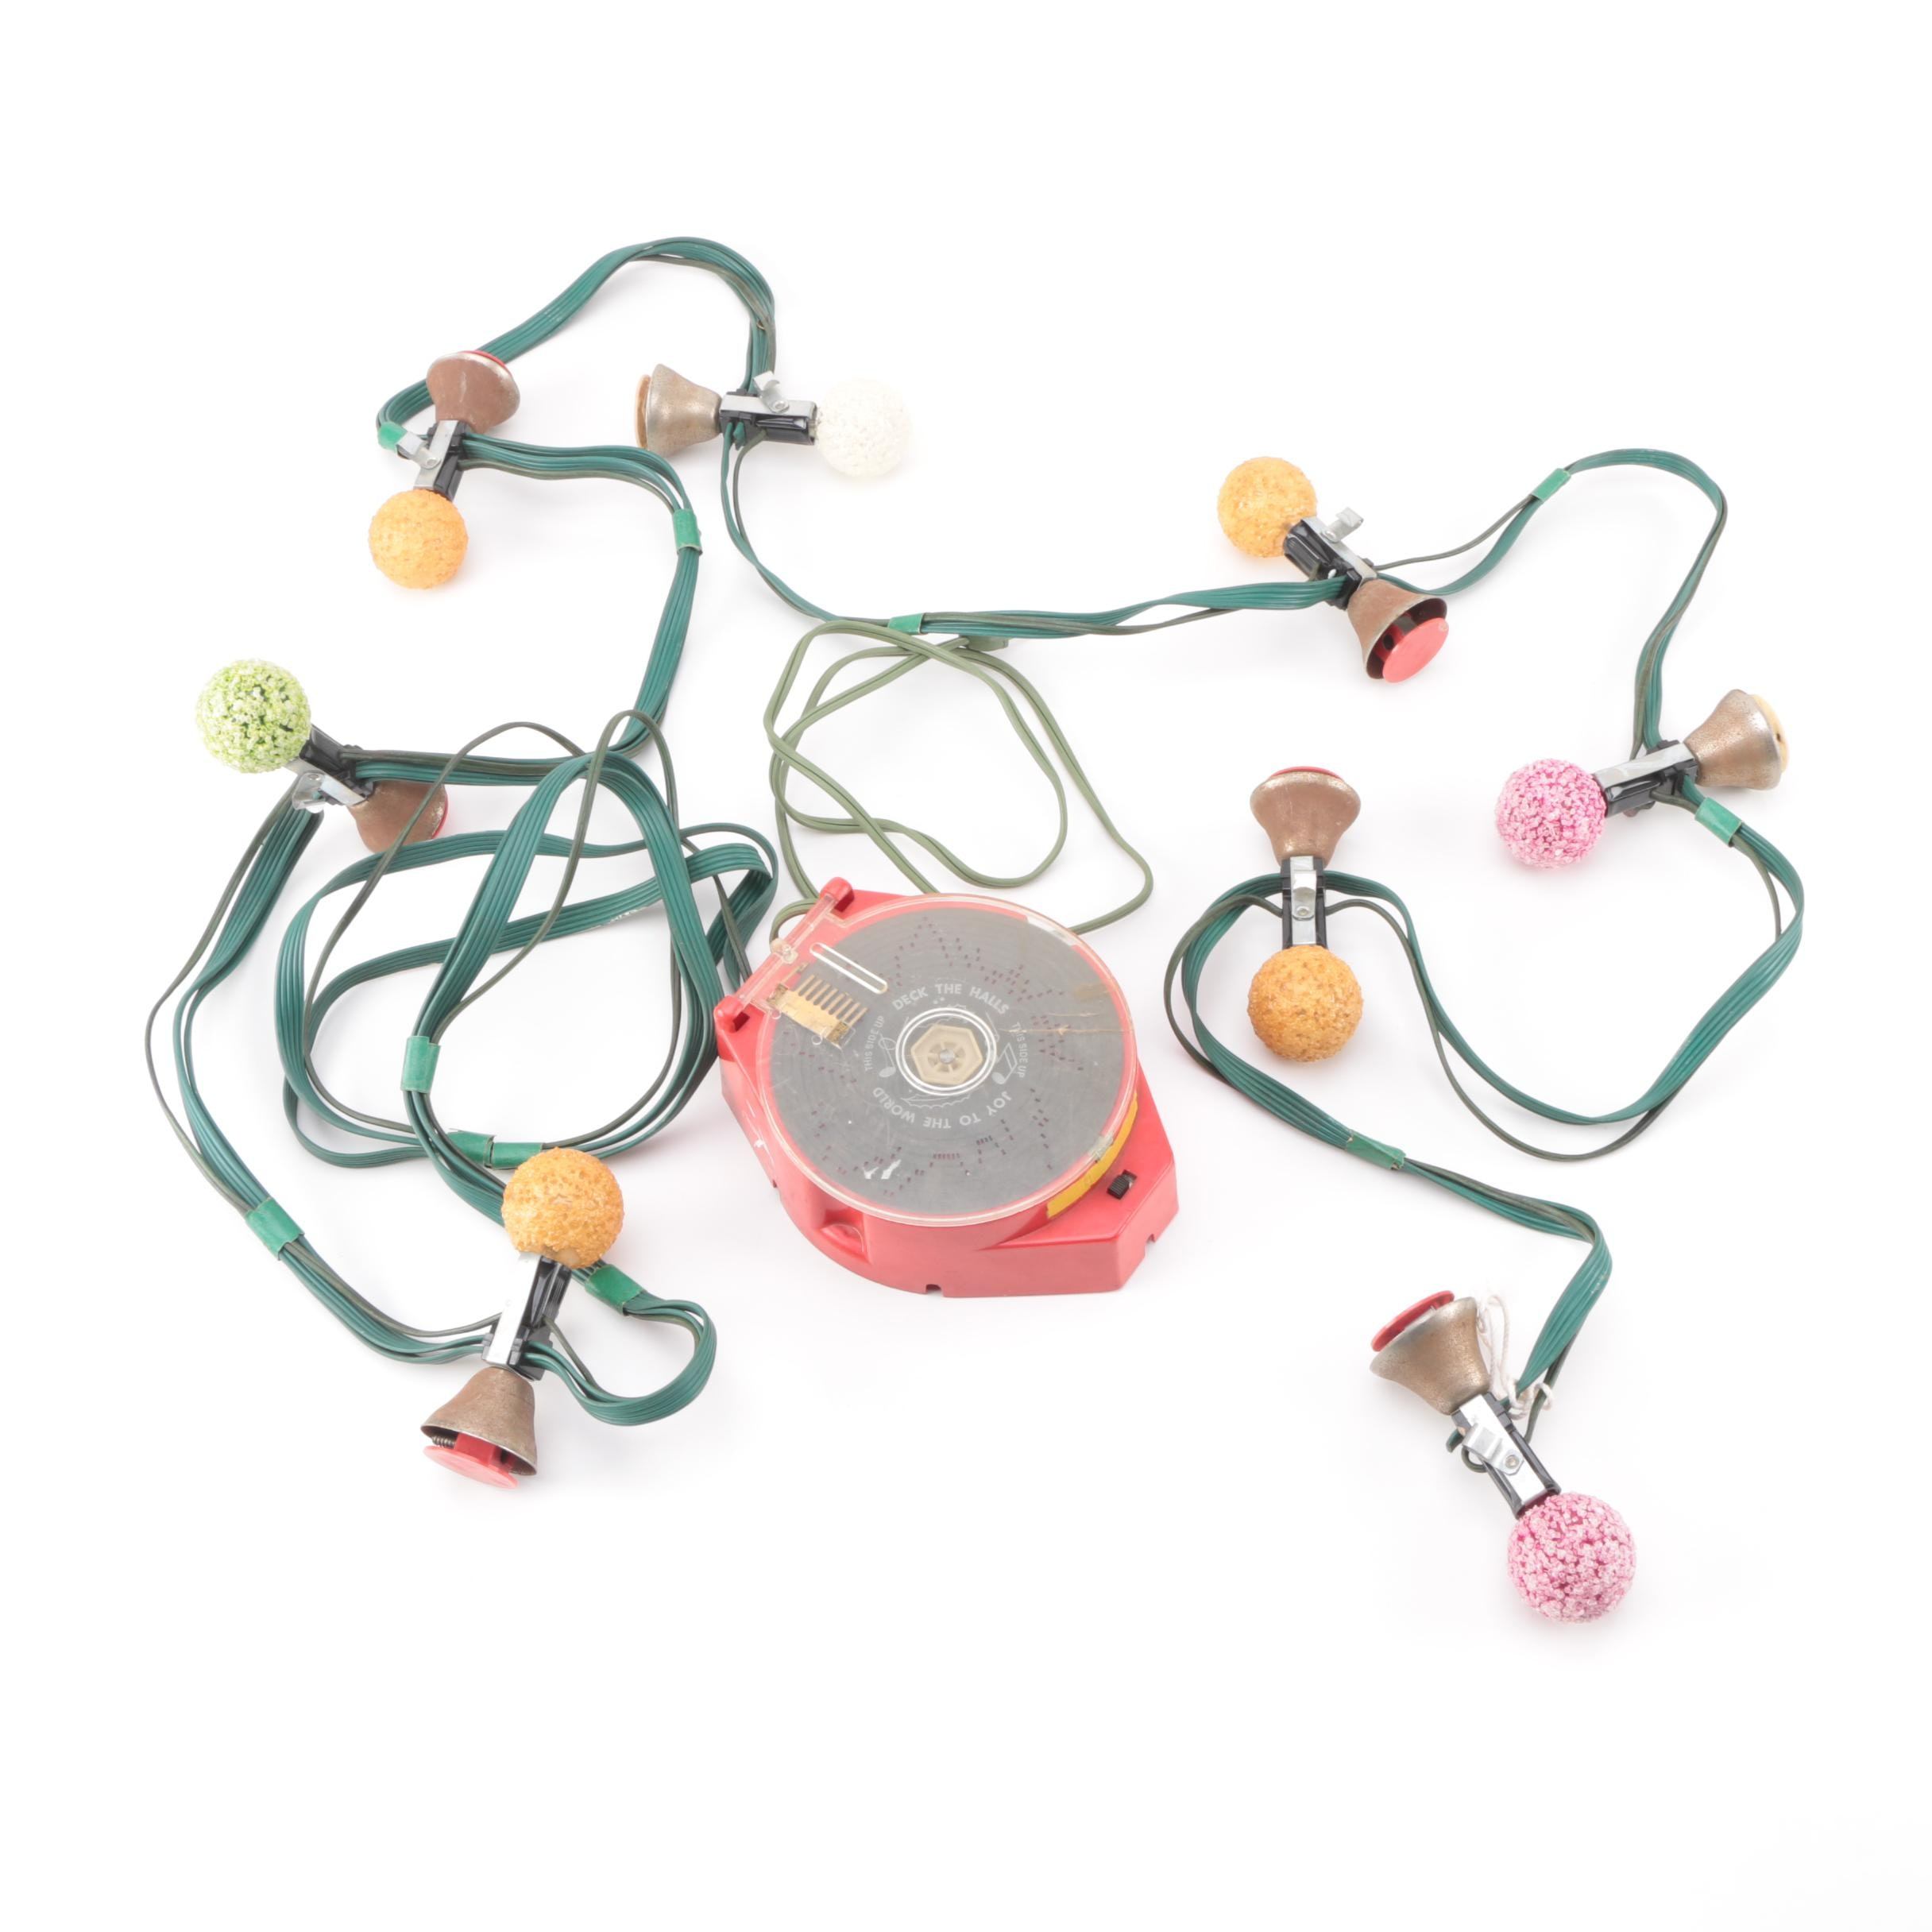 Vintage Christmas Electric Musical Bells with Lights